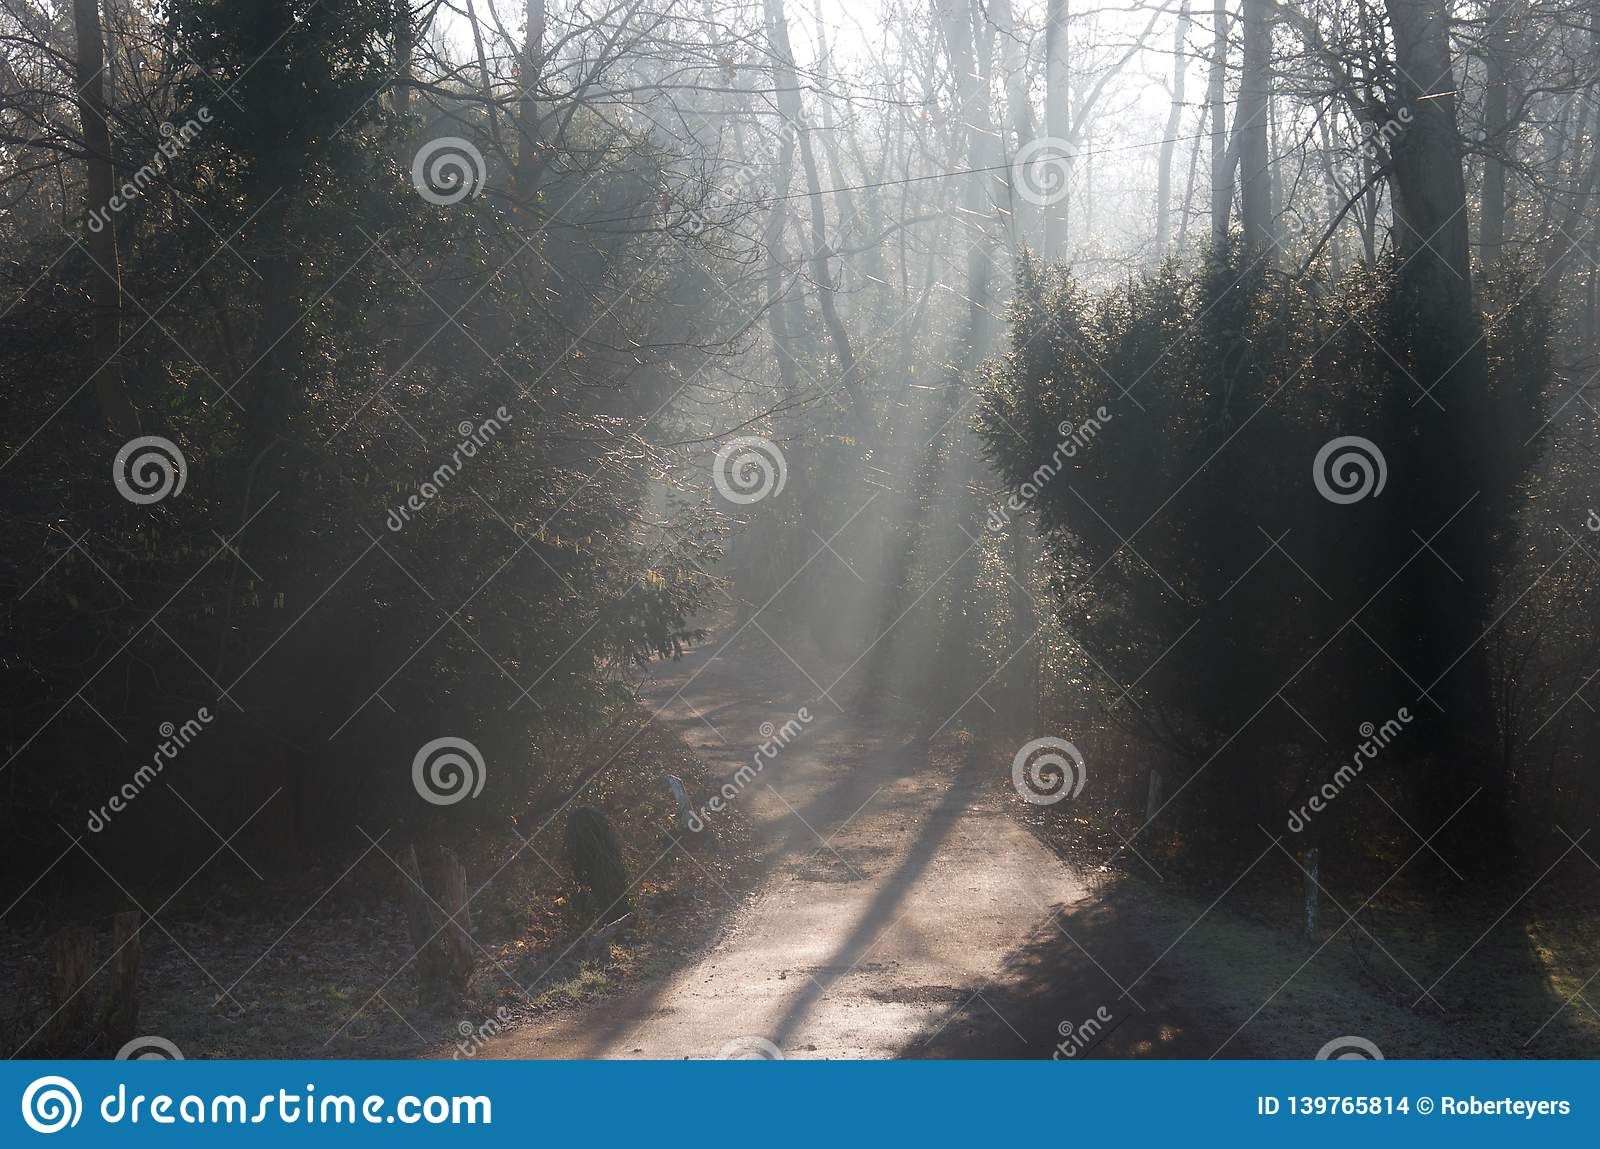 Beams of light on a road track through woodland forest: sunlight filtering through bare winter trees and mist